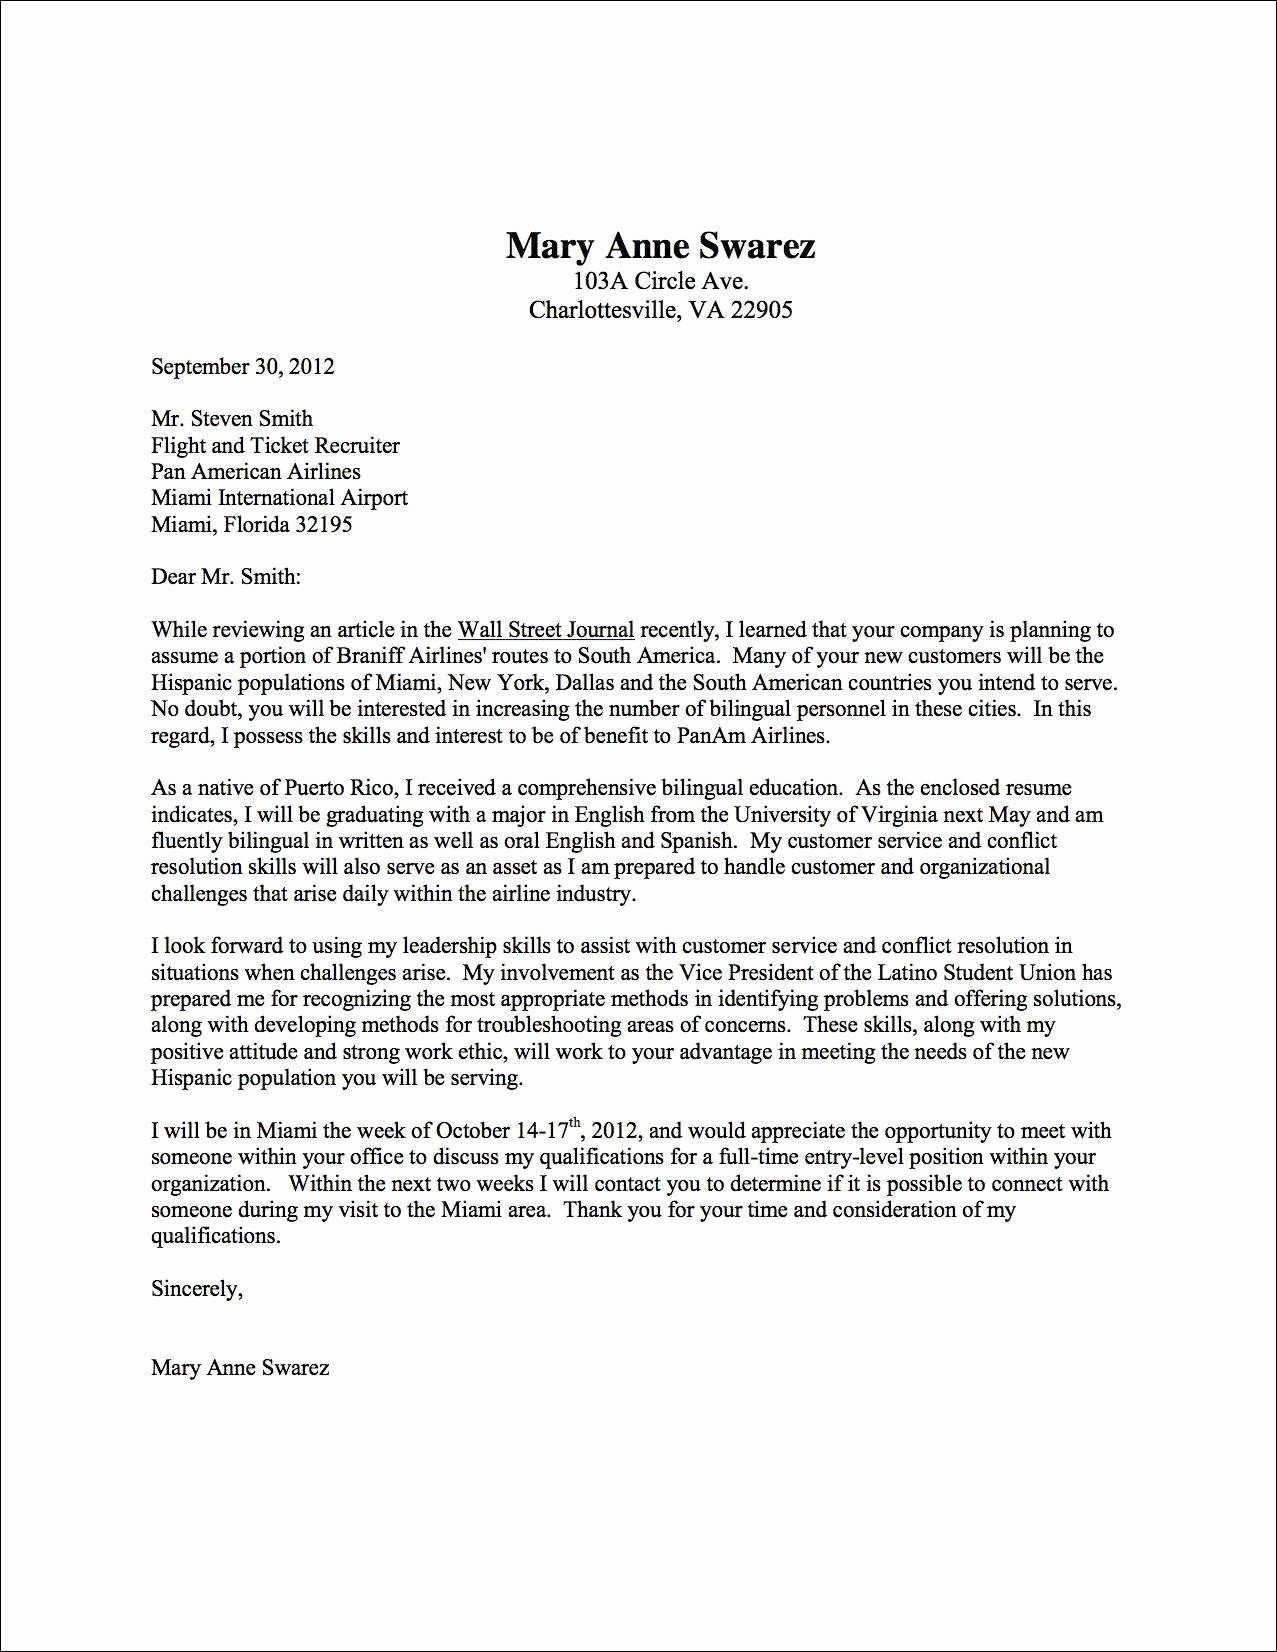 Template Of A Cover Letter Best Of Cover Letter Samples Download Free Cover Letter Templates